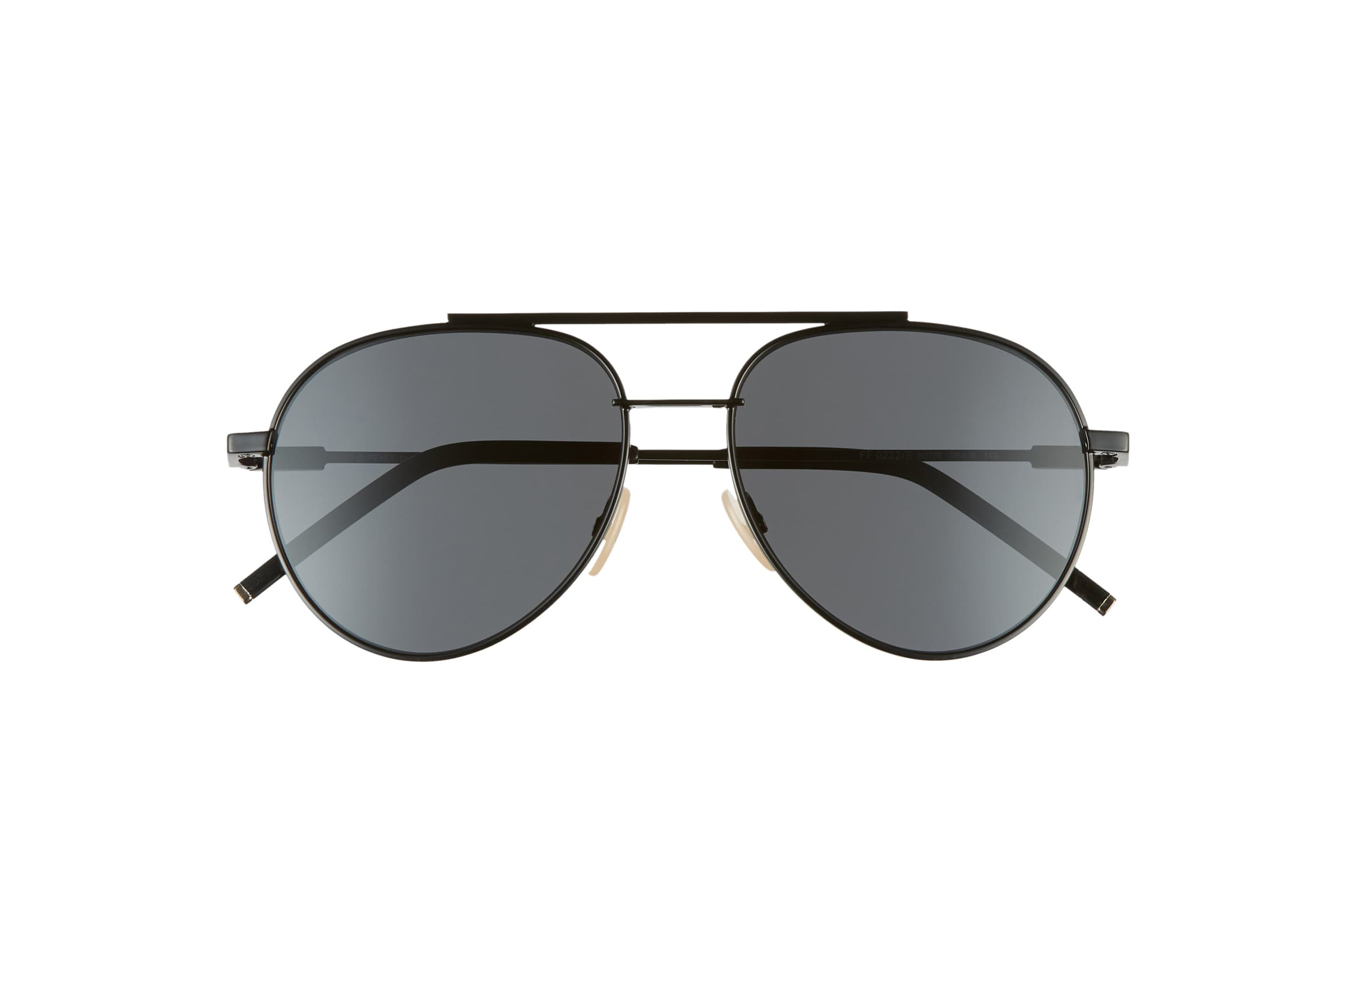 Fendi 56mm Aviator Sunglasses